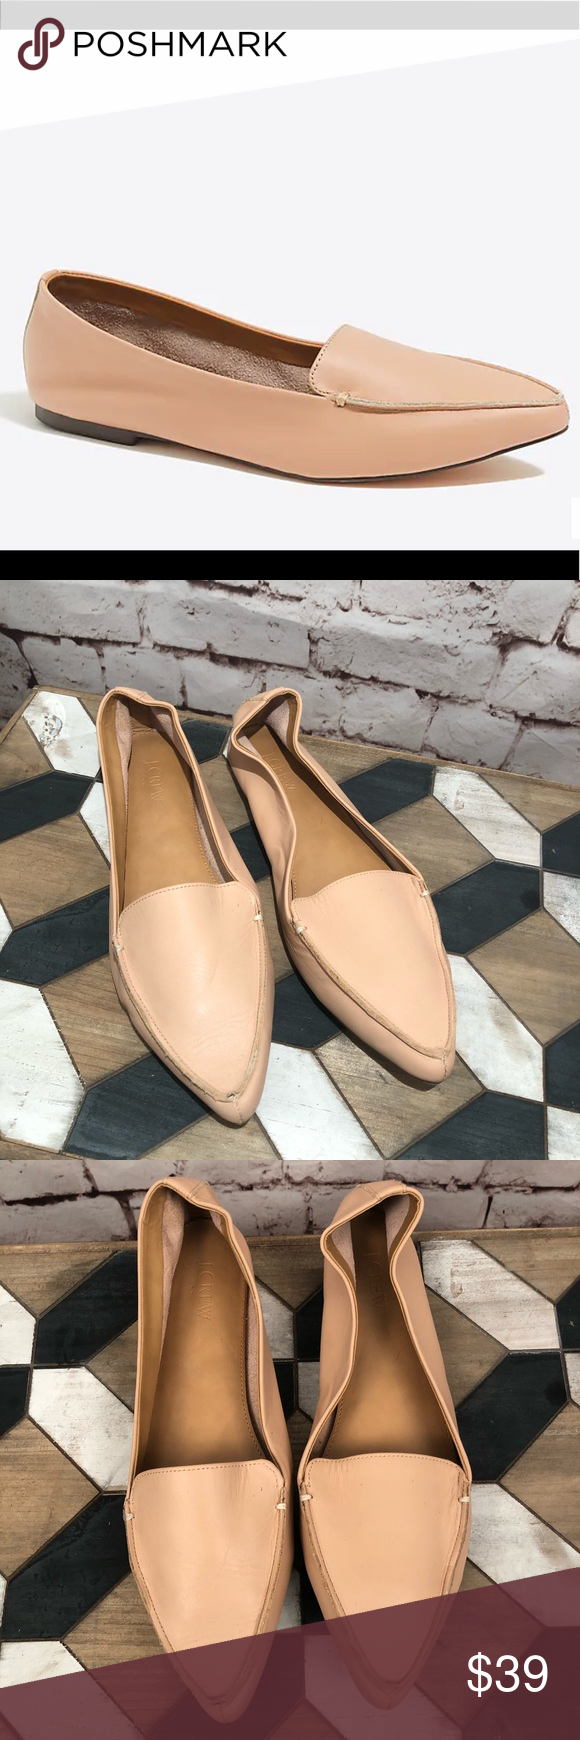 a85c0734041 J. Crew Edie Leather Loafers In Warm Beige Nude J. Crew Edie Leather Loafers  In Warm Beige Nude color. Slip on leather loafers with pointed toe.